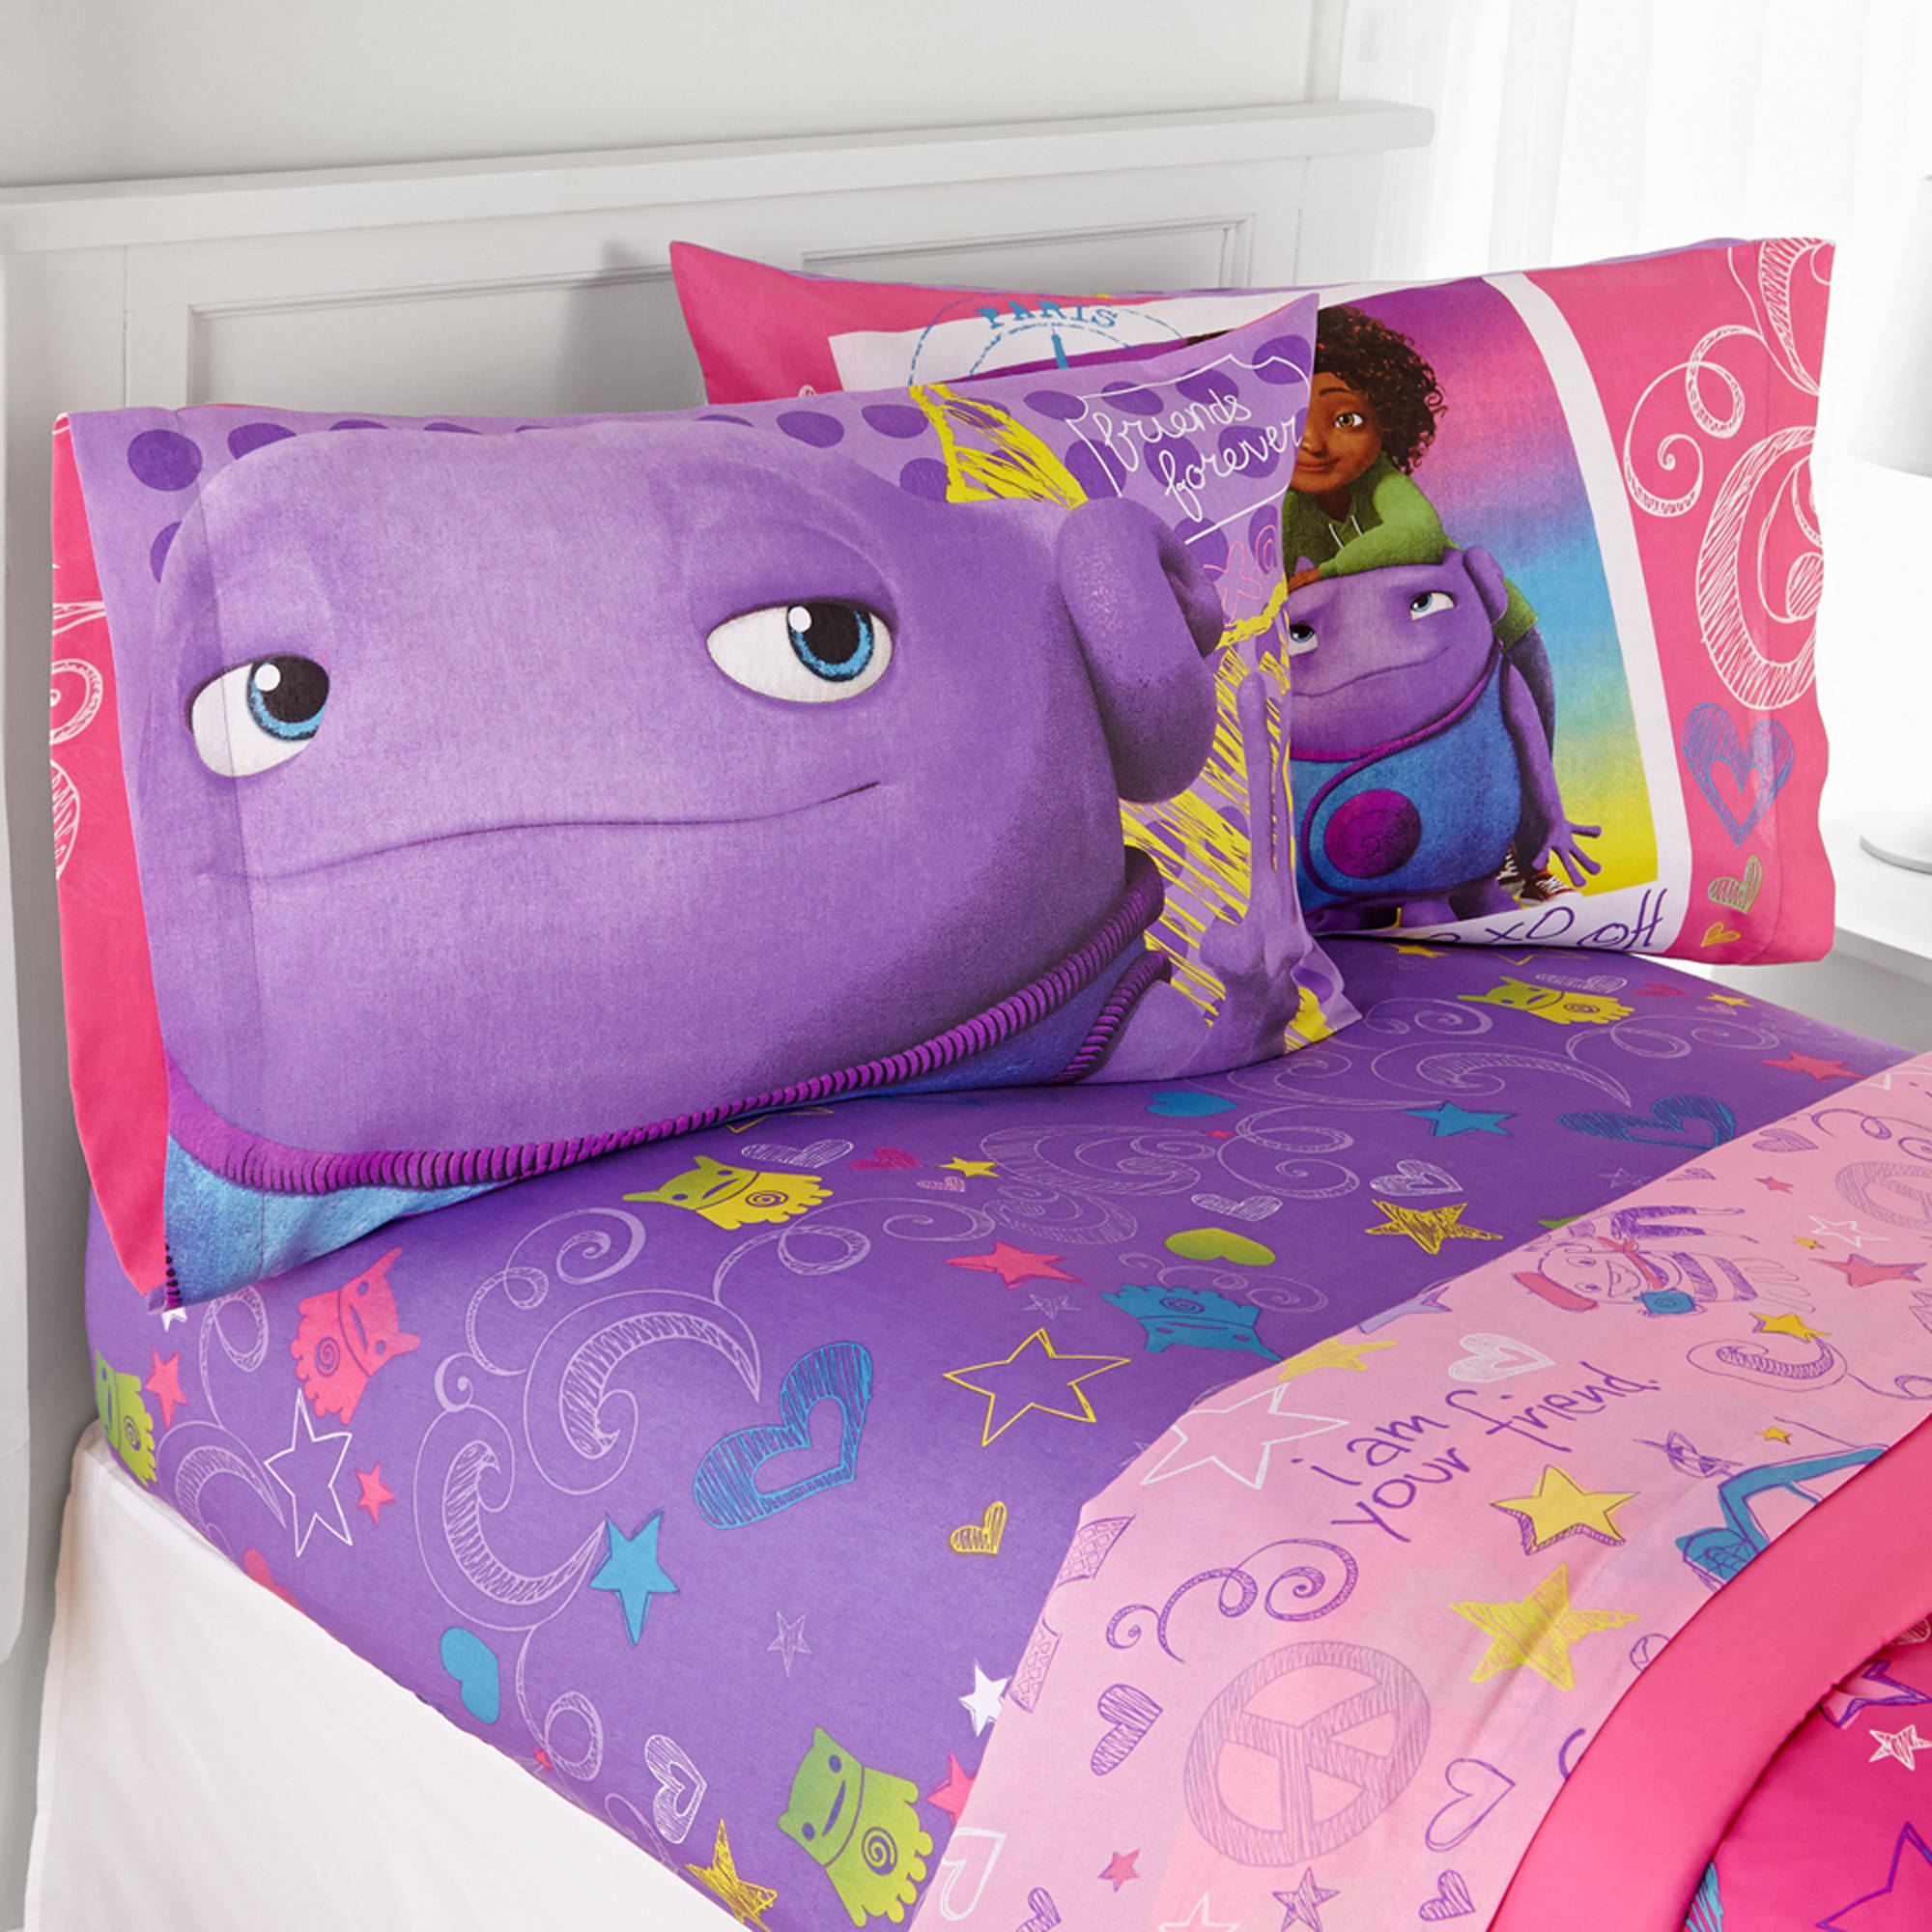 DreamWorks HOME BFF Forever Twin Sheet Set